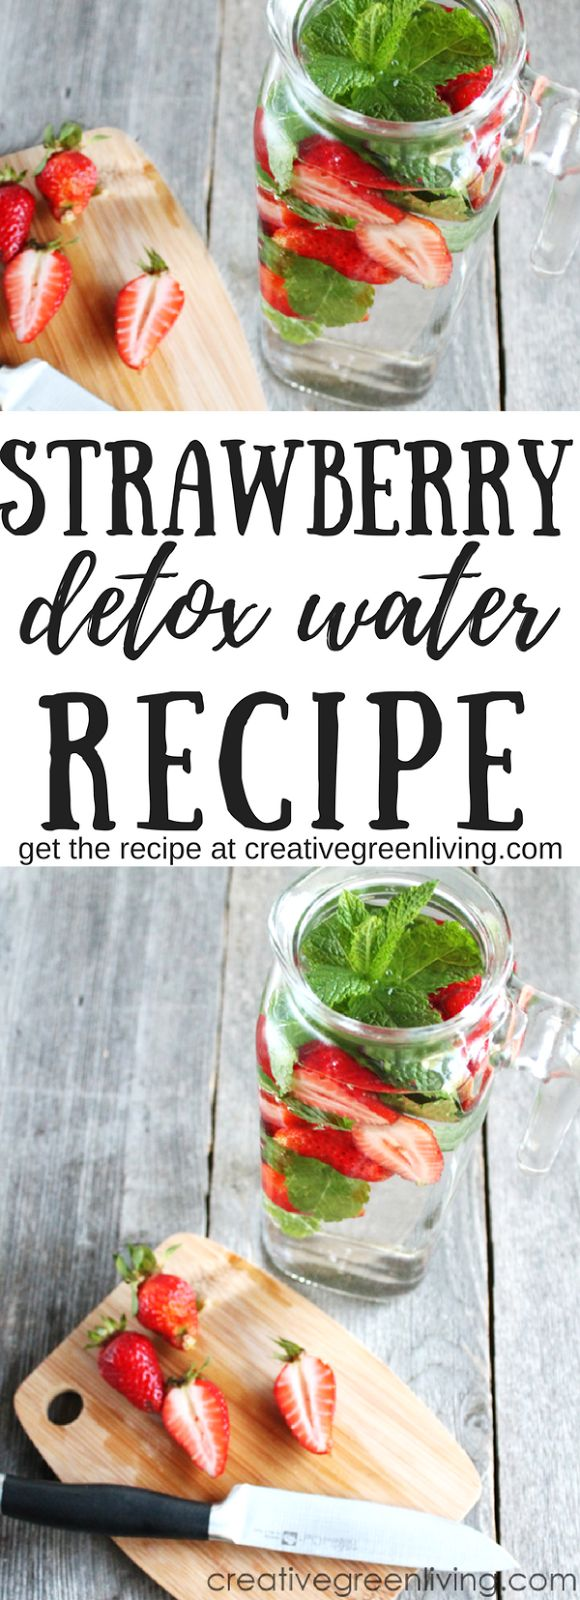 Strawberry Mint Infused Detox Water